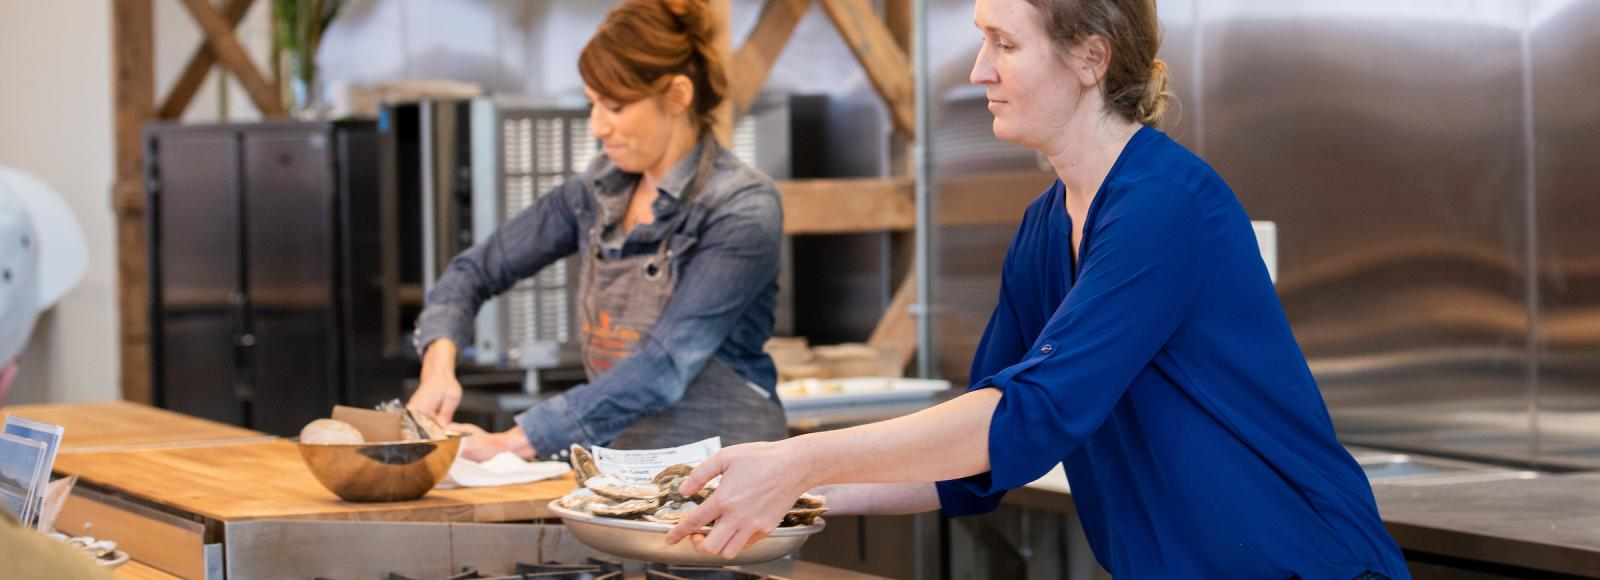 Two women in a large open kitchen share oysters with onlookers.